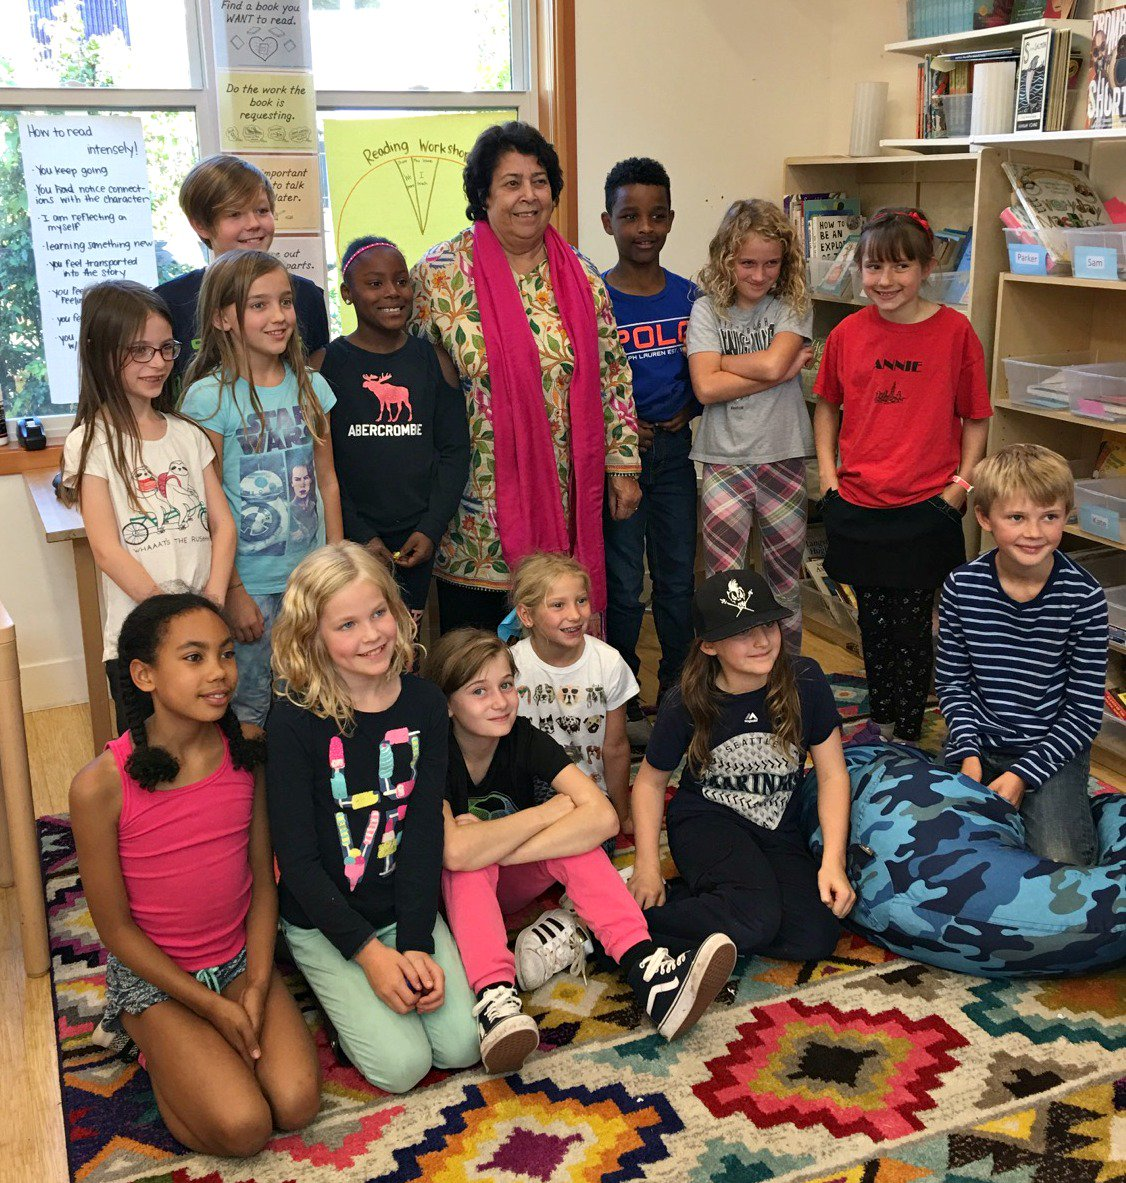 Razia Jan had a wonderful time visiting with young friends at the Valley School in #Seattle today! #Afghanistan #education #globalvillage <br>http://pic.twitter.com/abFB3Qd6as